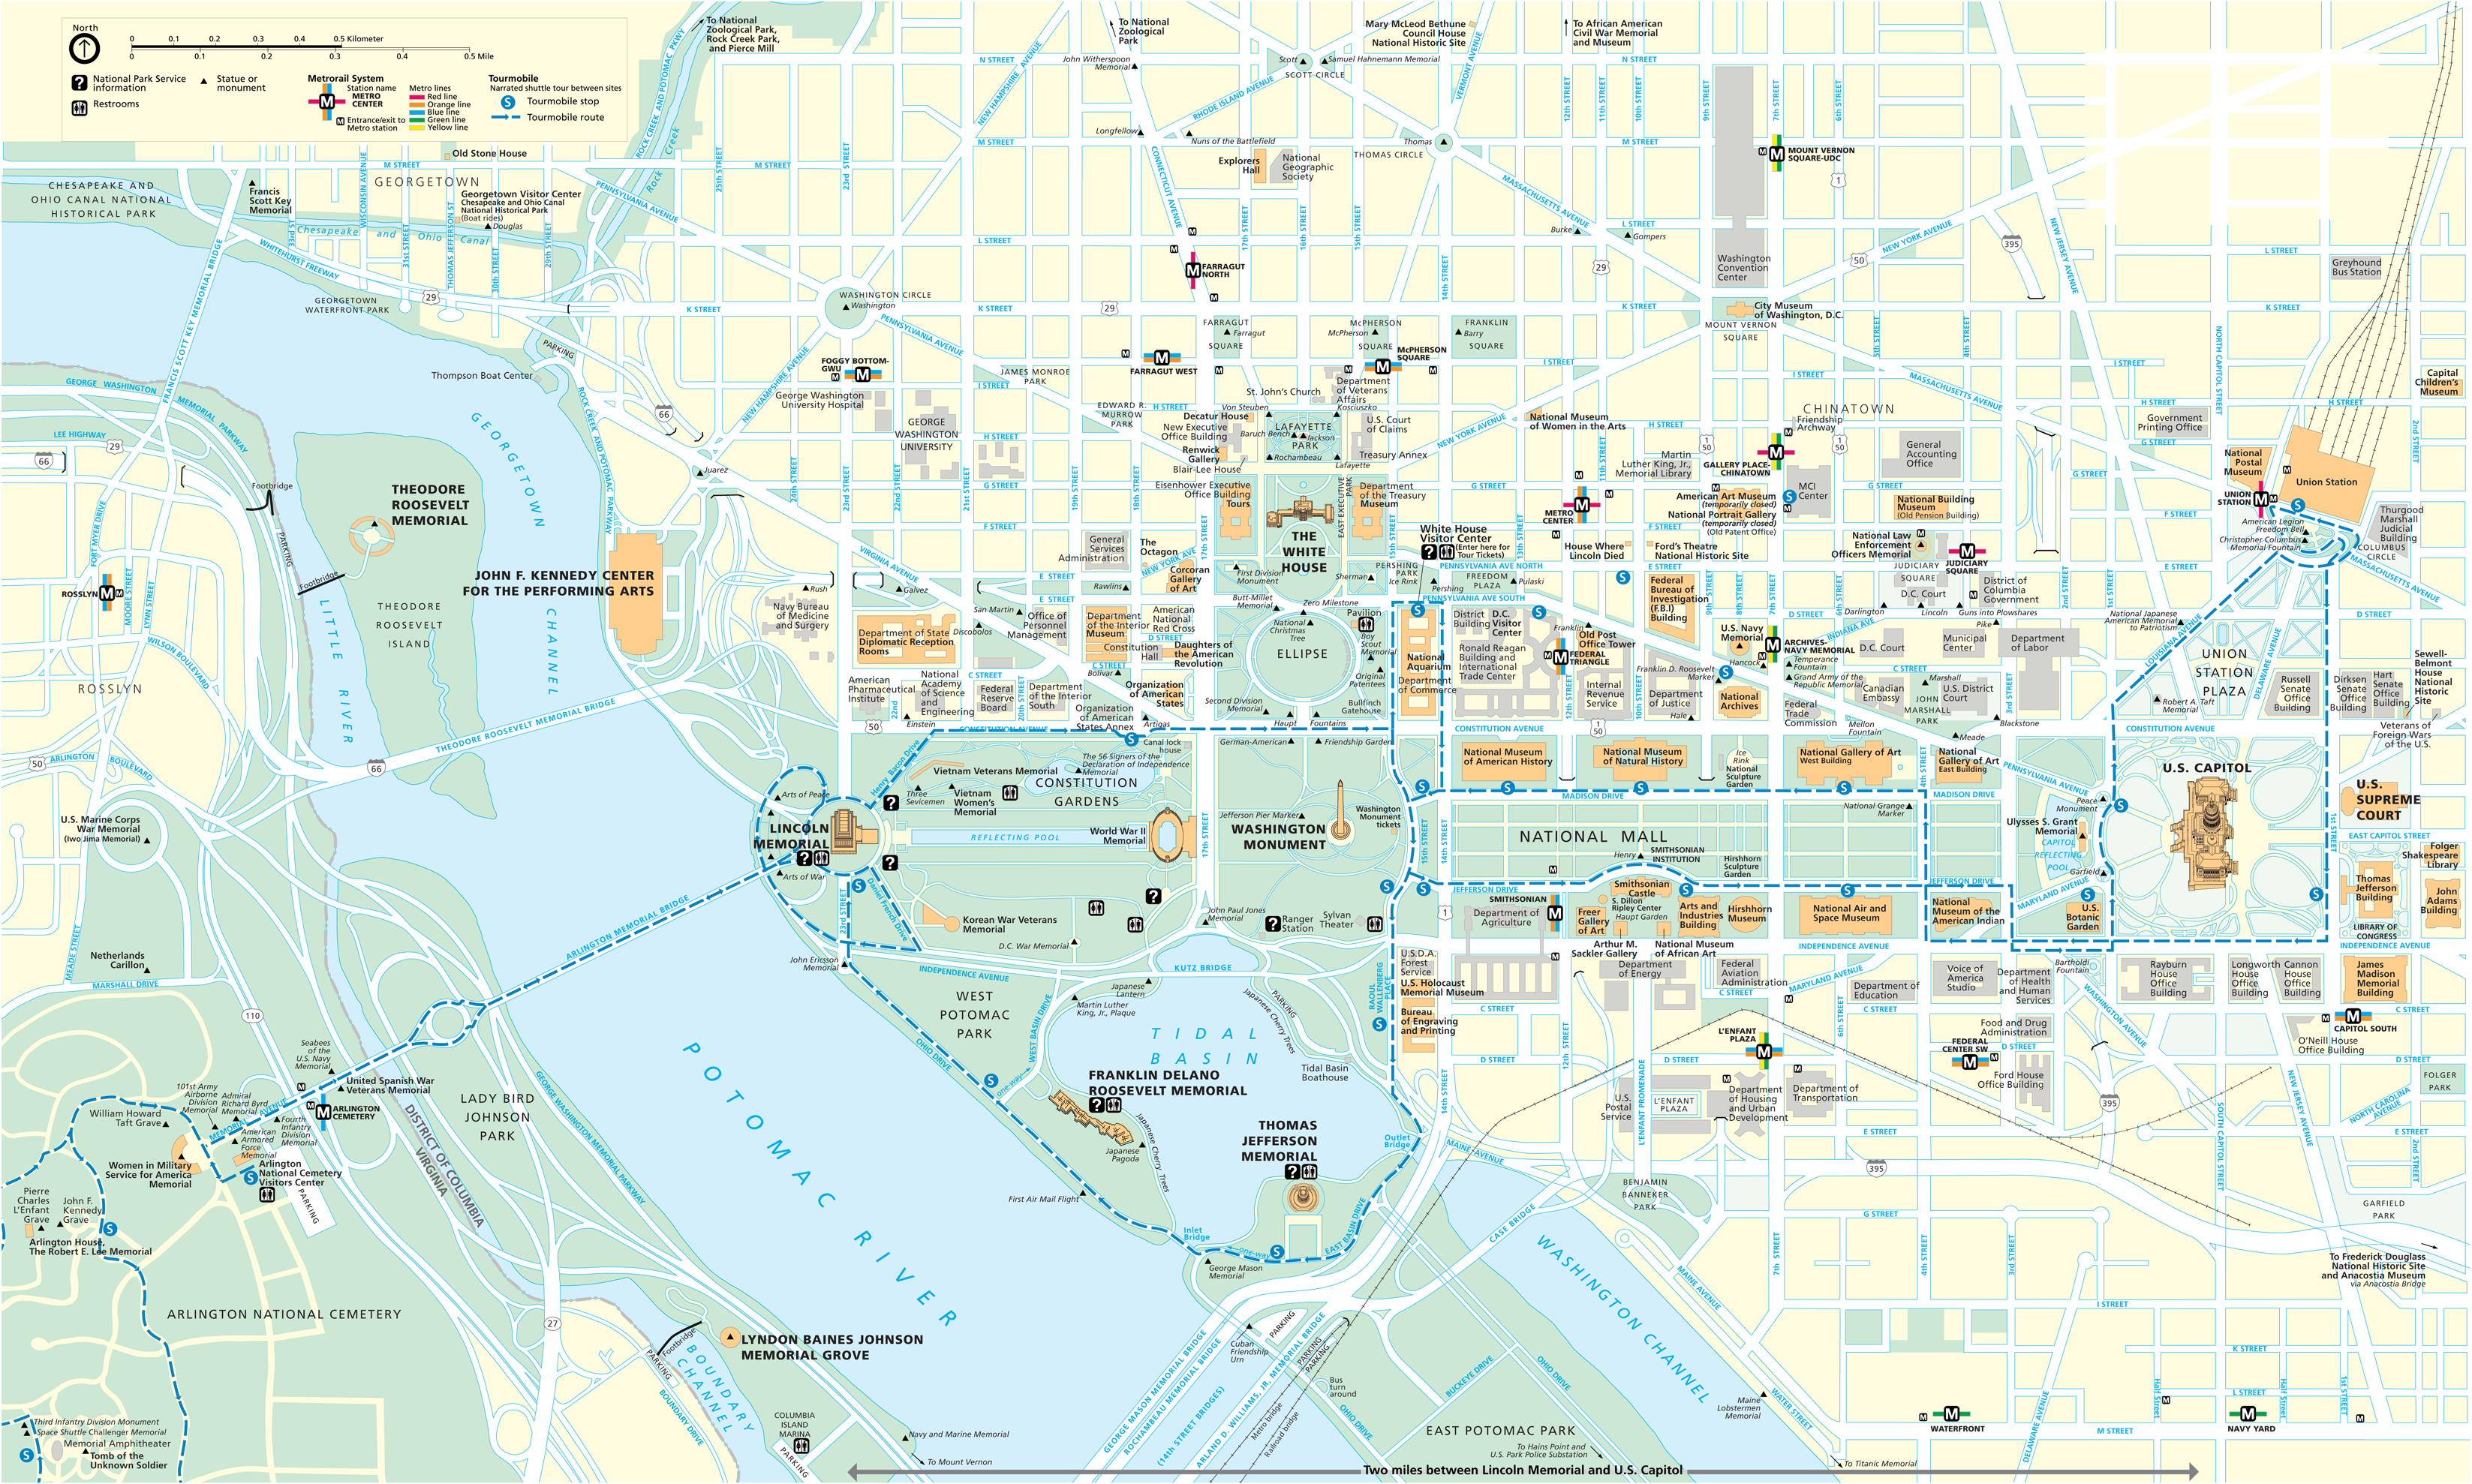 Tourist Maps Of Washington Dc – Washington DC Tourist Map